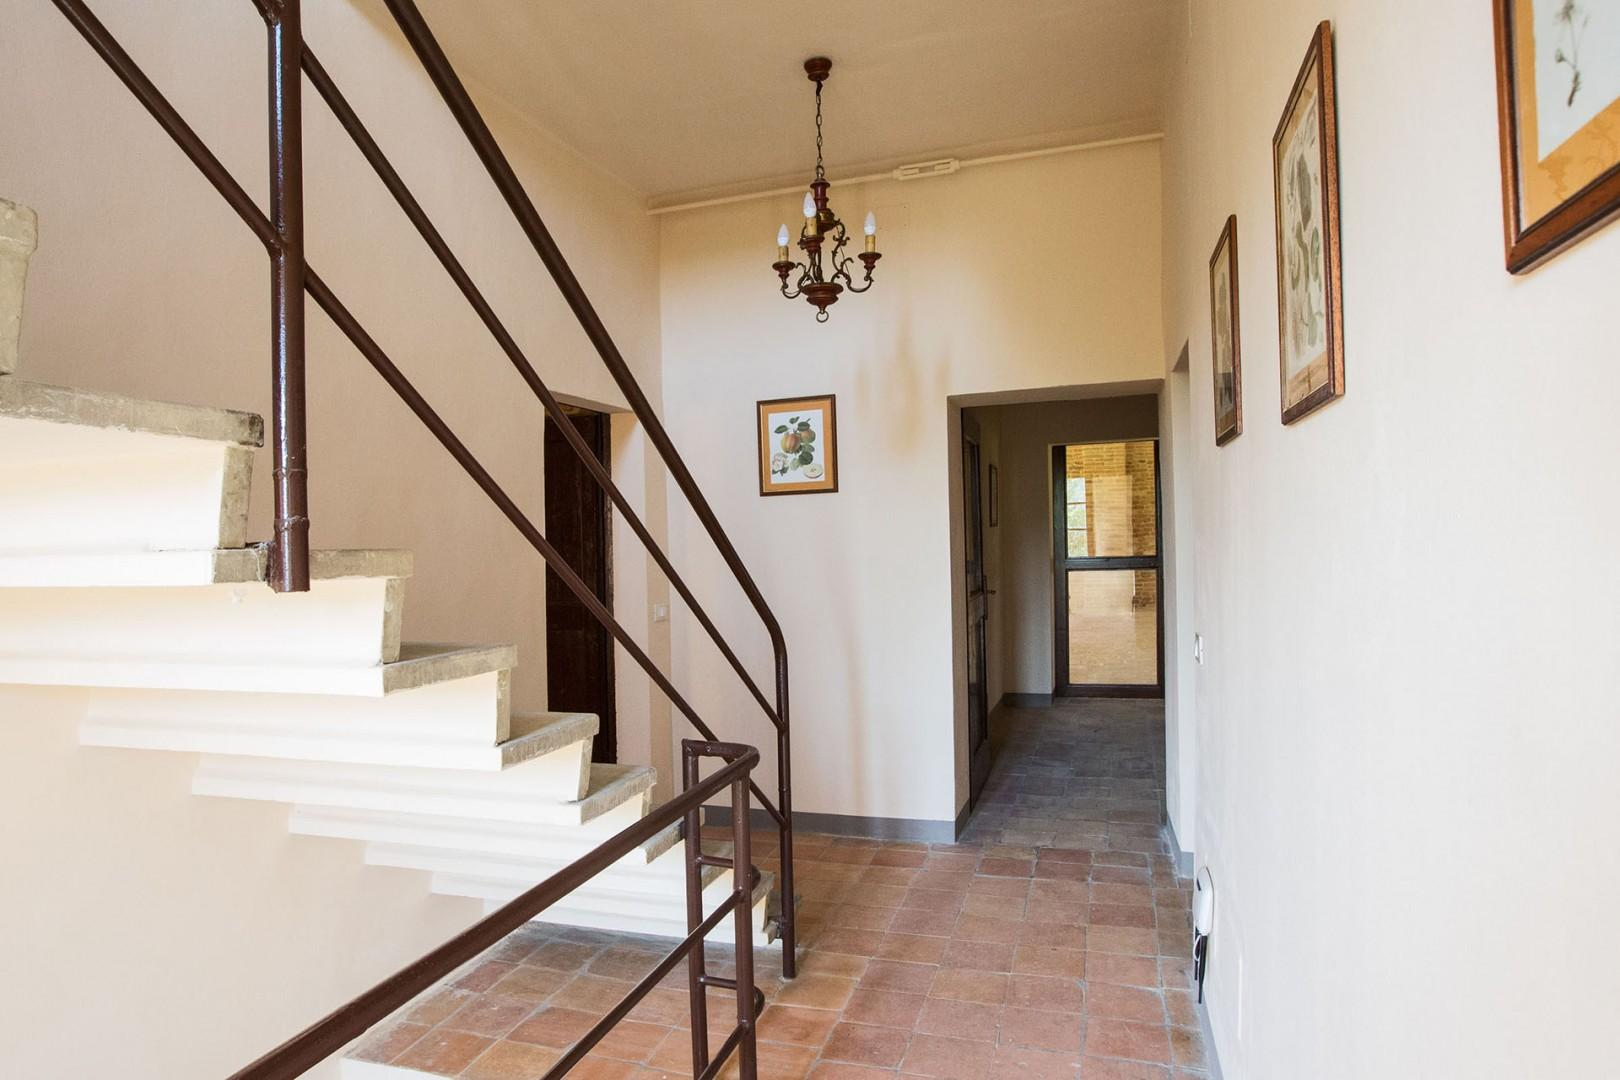 Stair case that rises to the 3rd floor (2nd floor European).